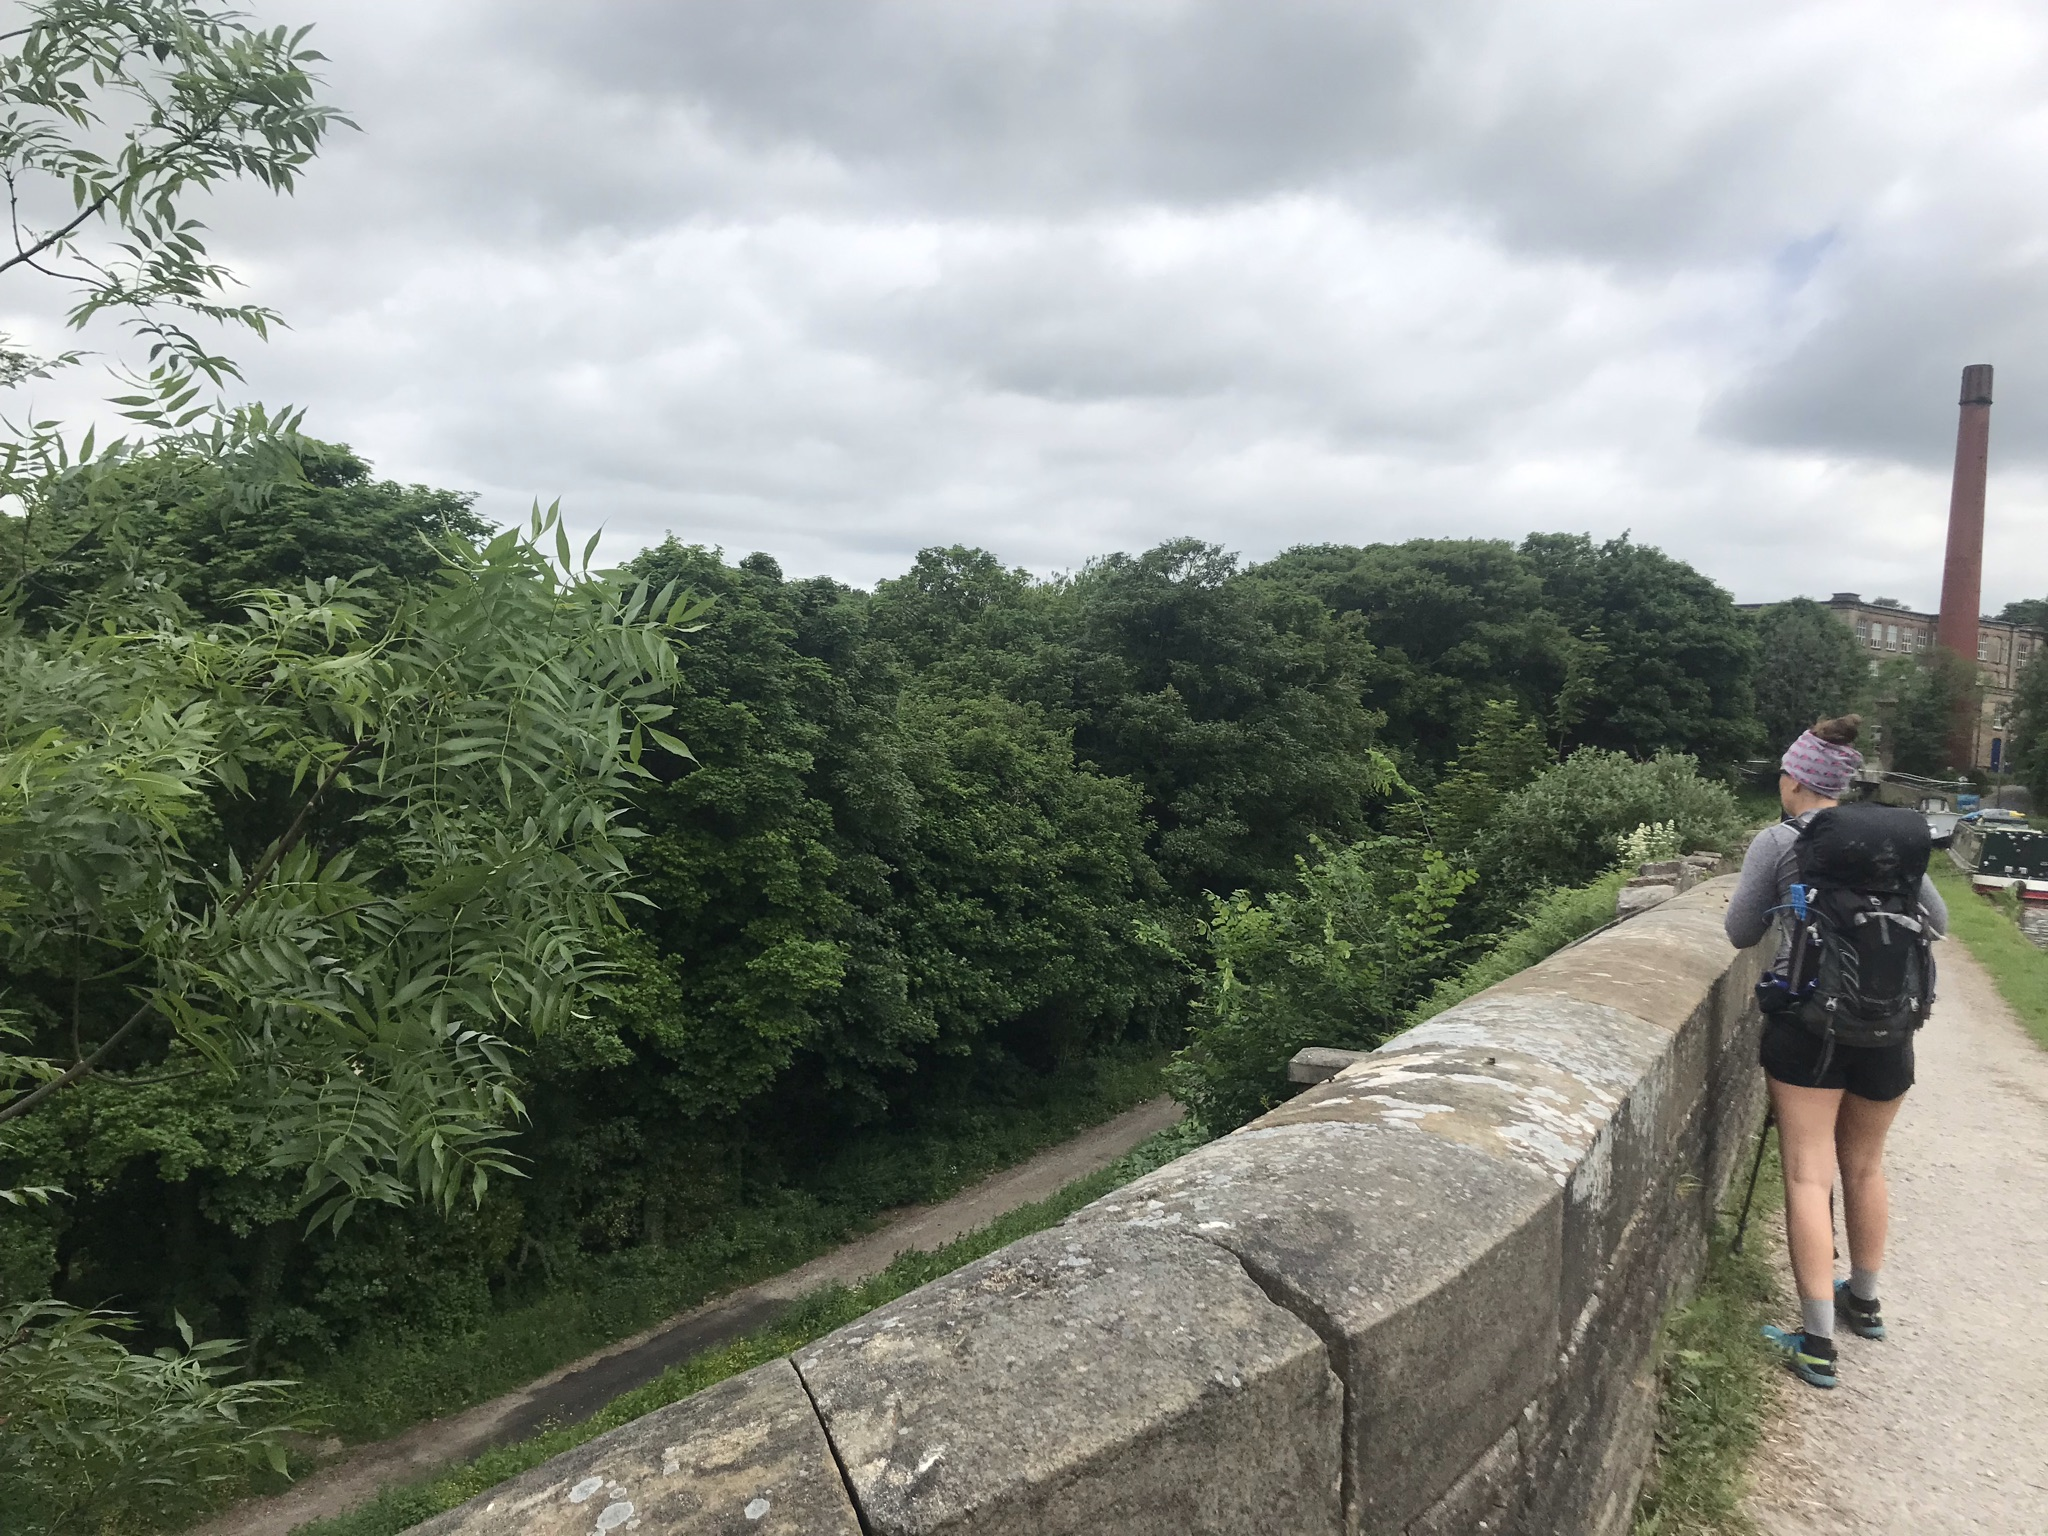 Sarah stands with her back to the camera looking over a wide stone parapet. There is a tall brick chimney and canal boats in the distance.